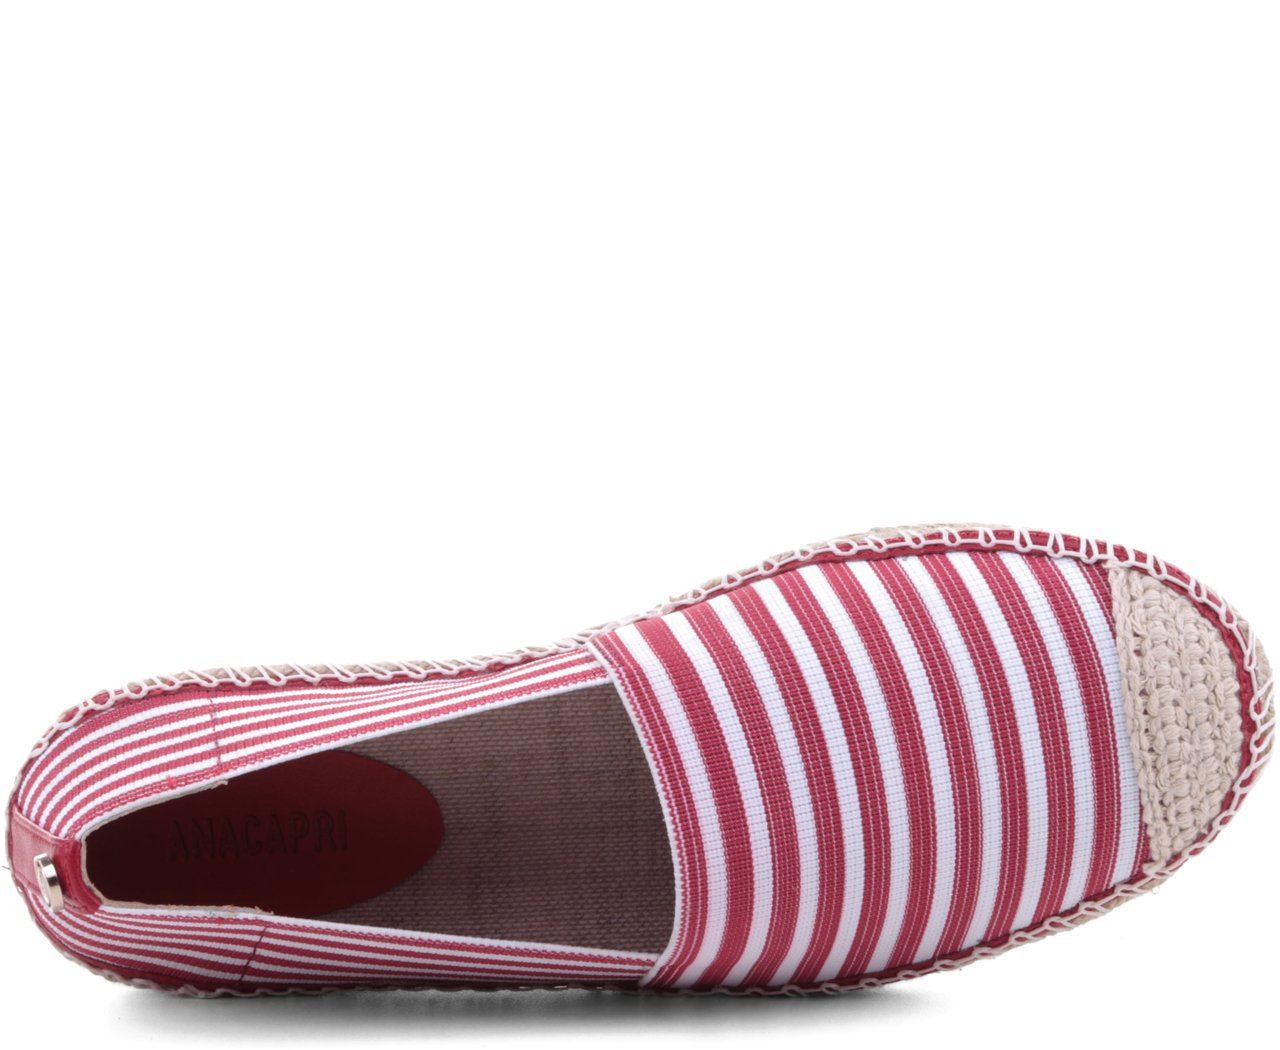 Slide into these espadrille sandals. With a bow design on the front, the Phantom is so lightweight, it almost feels like it isn't there. Page 1.